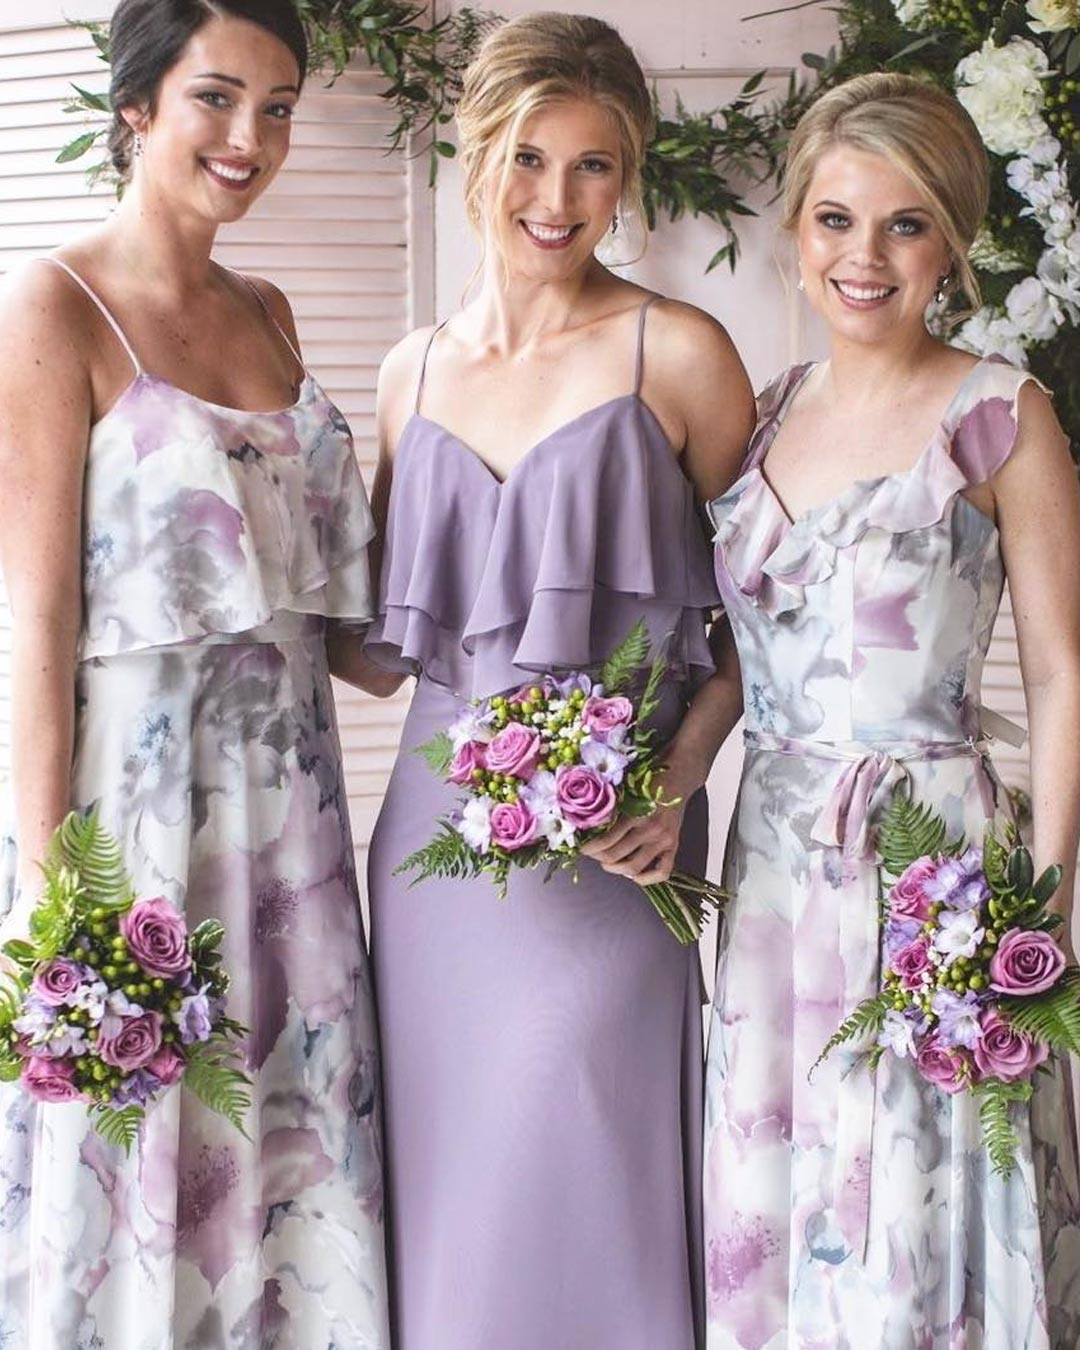 lilac wedding colors bridesmaids attire dress